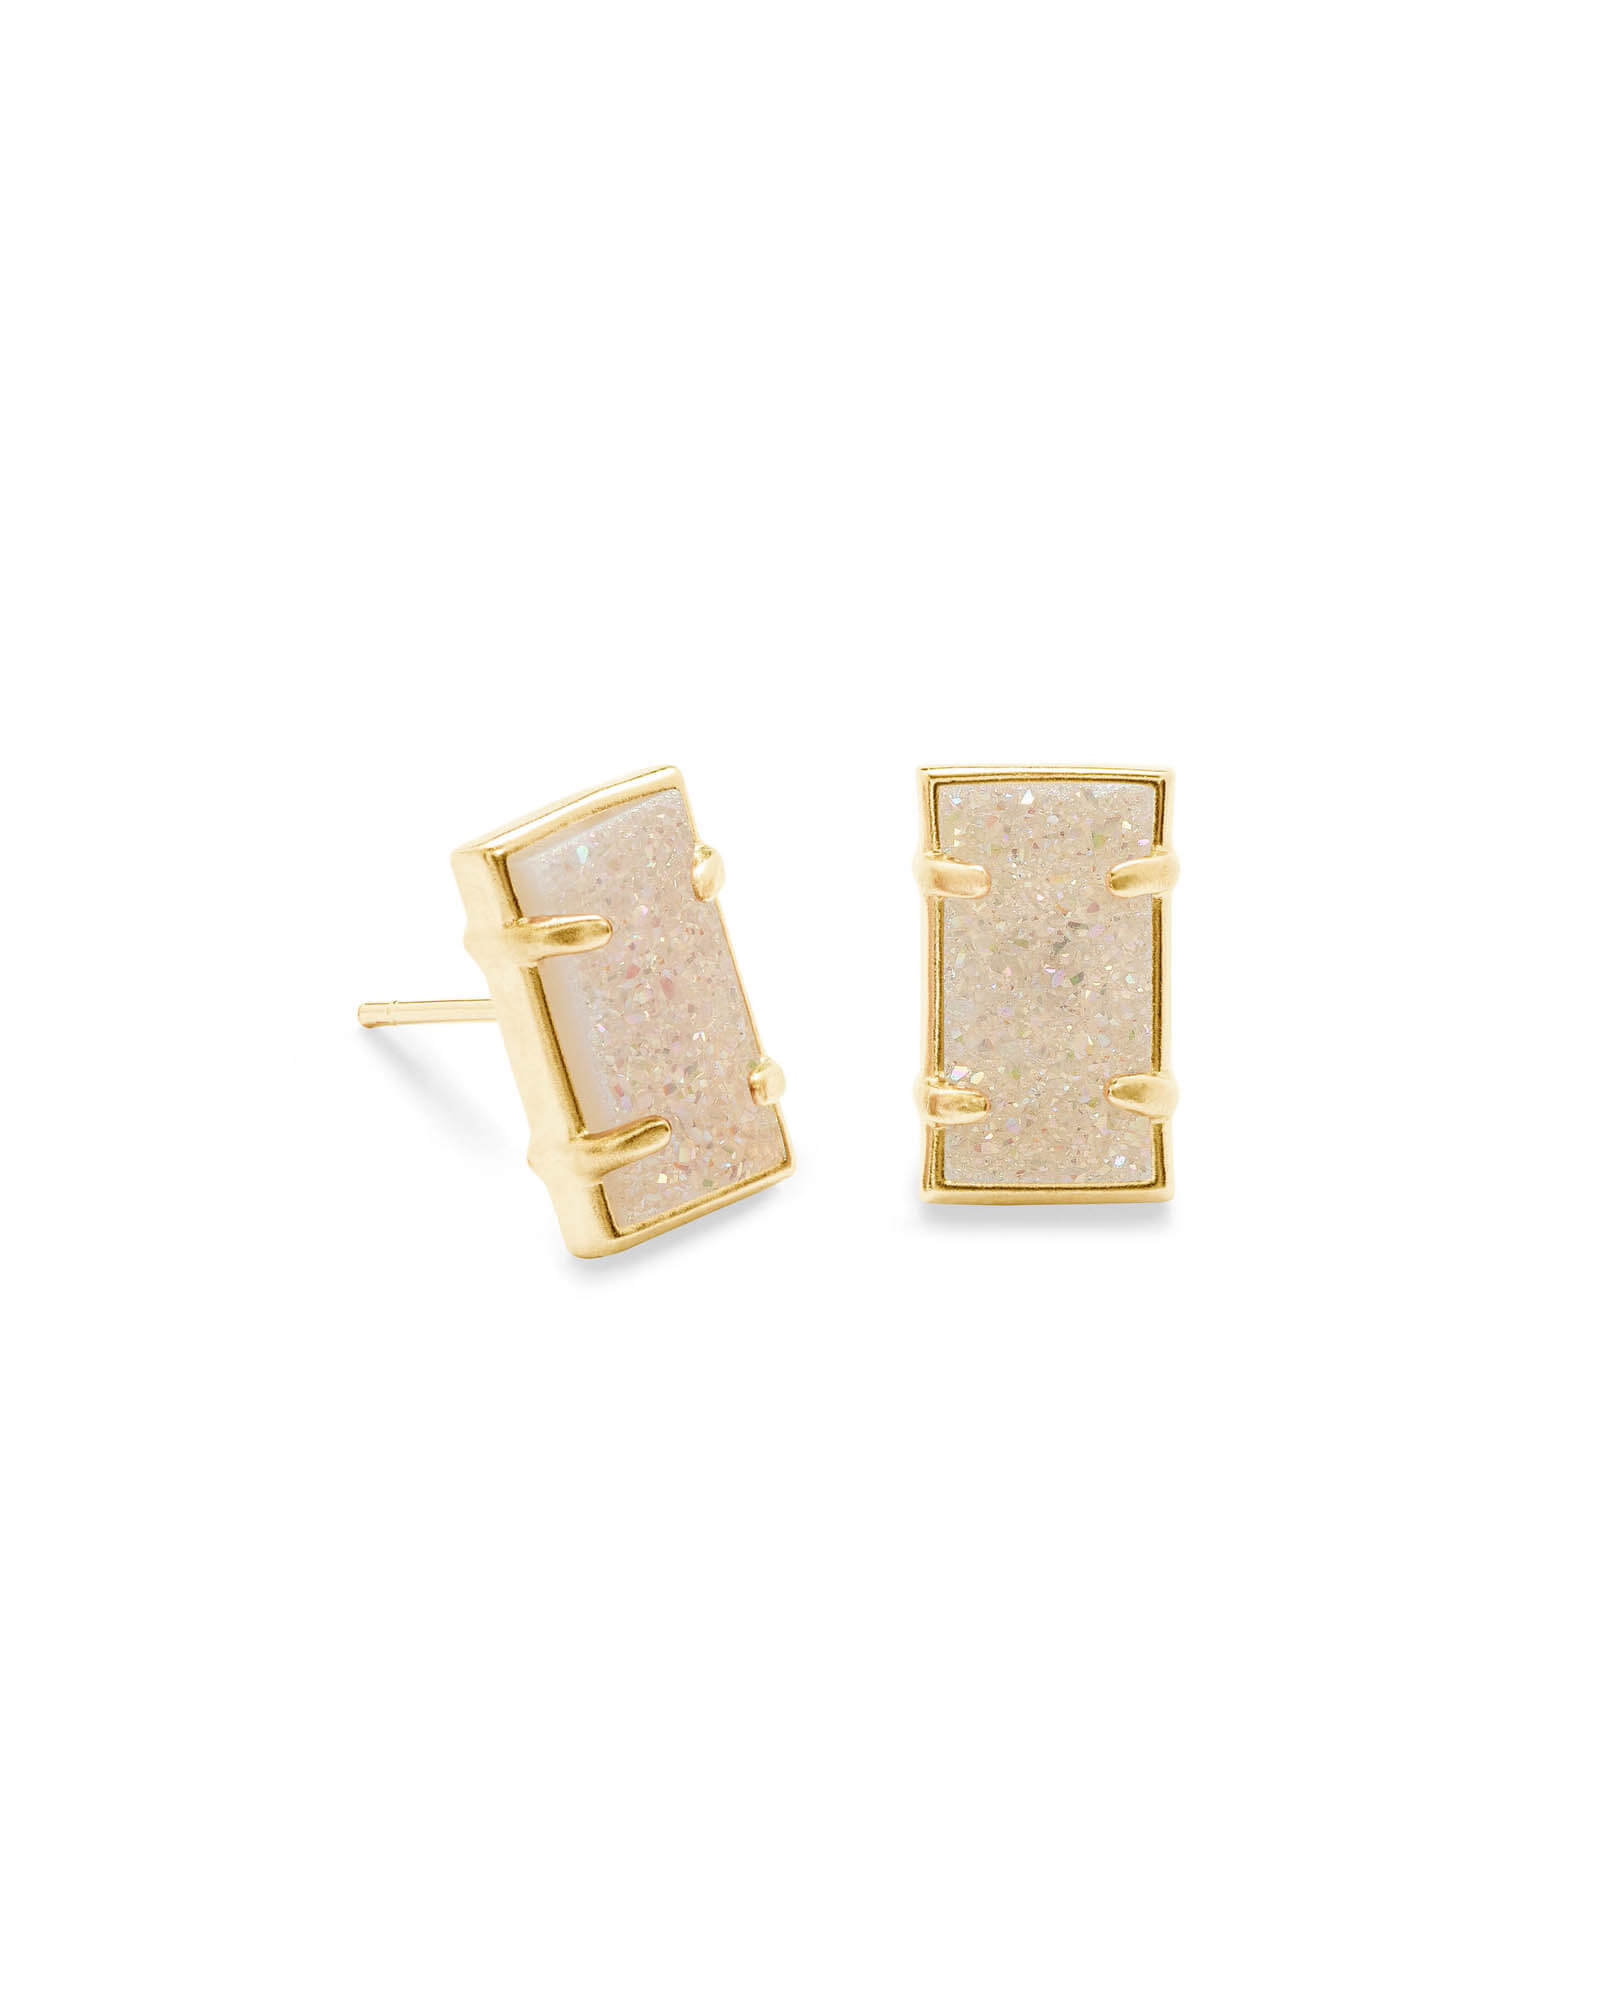 Paola Gold Stud Earrings in Iridescent Drusy